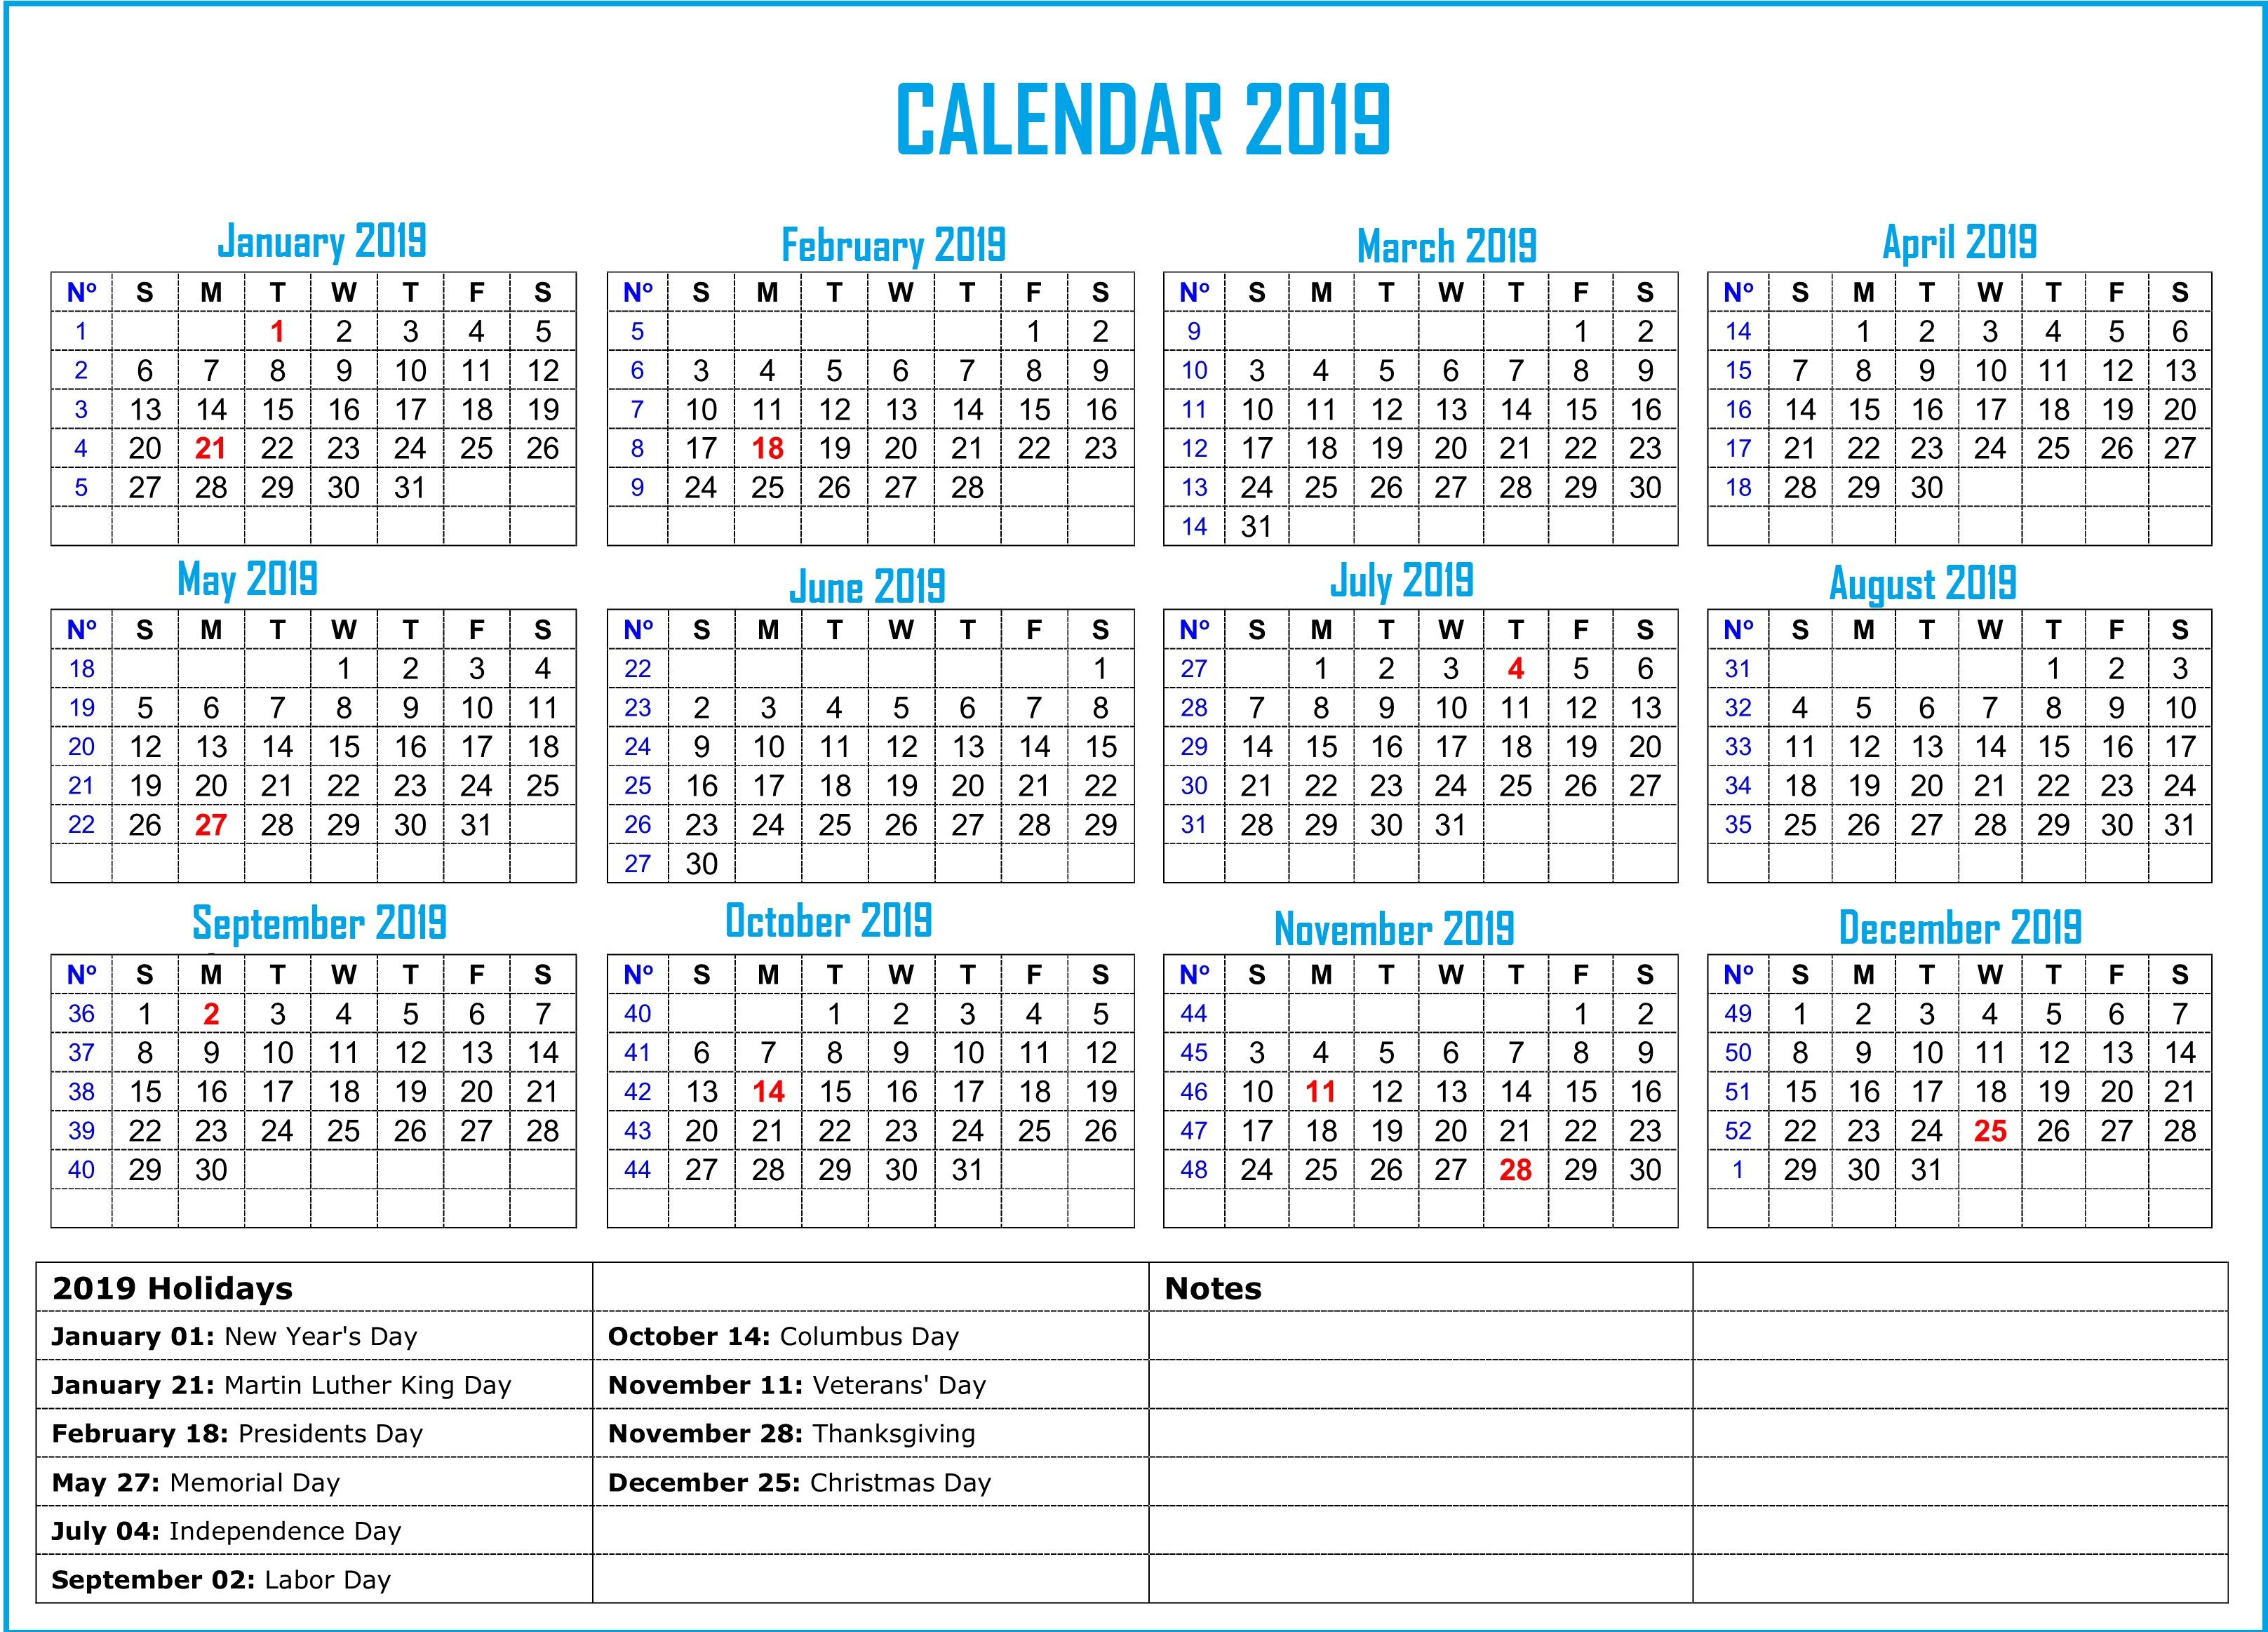 Free Yearly 12 Month Calendar One Page Template Printable Inside 12 Mo Calendar Template One Page No Dates